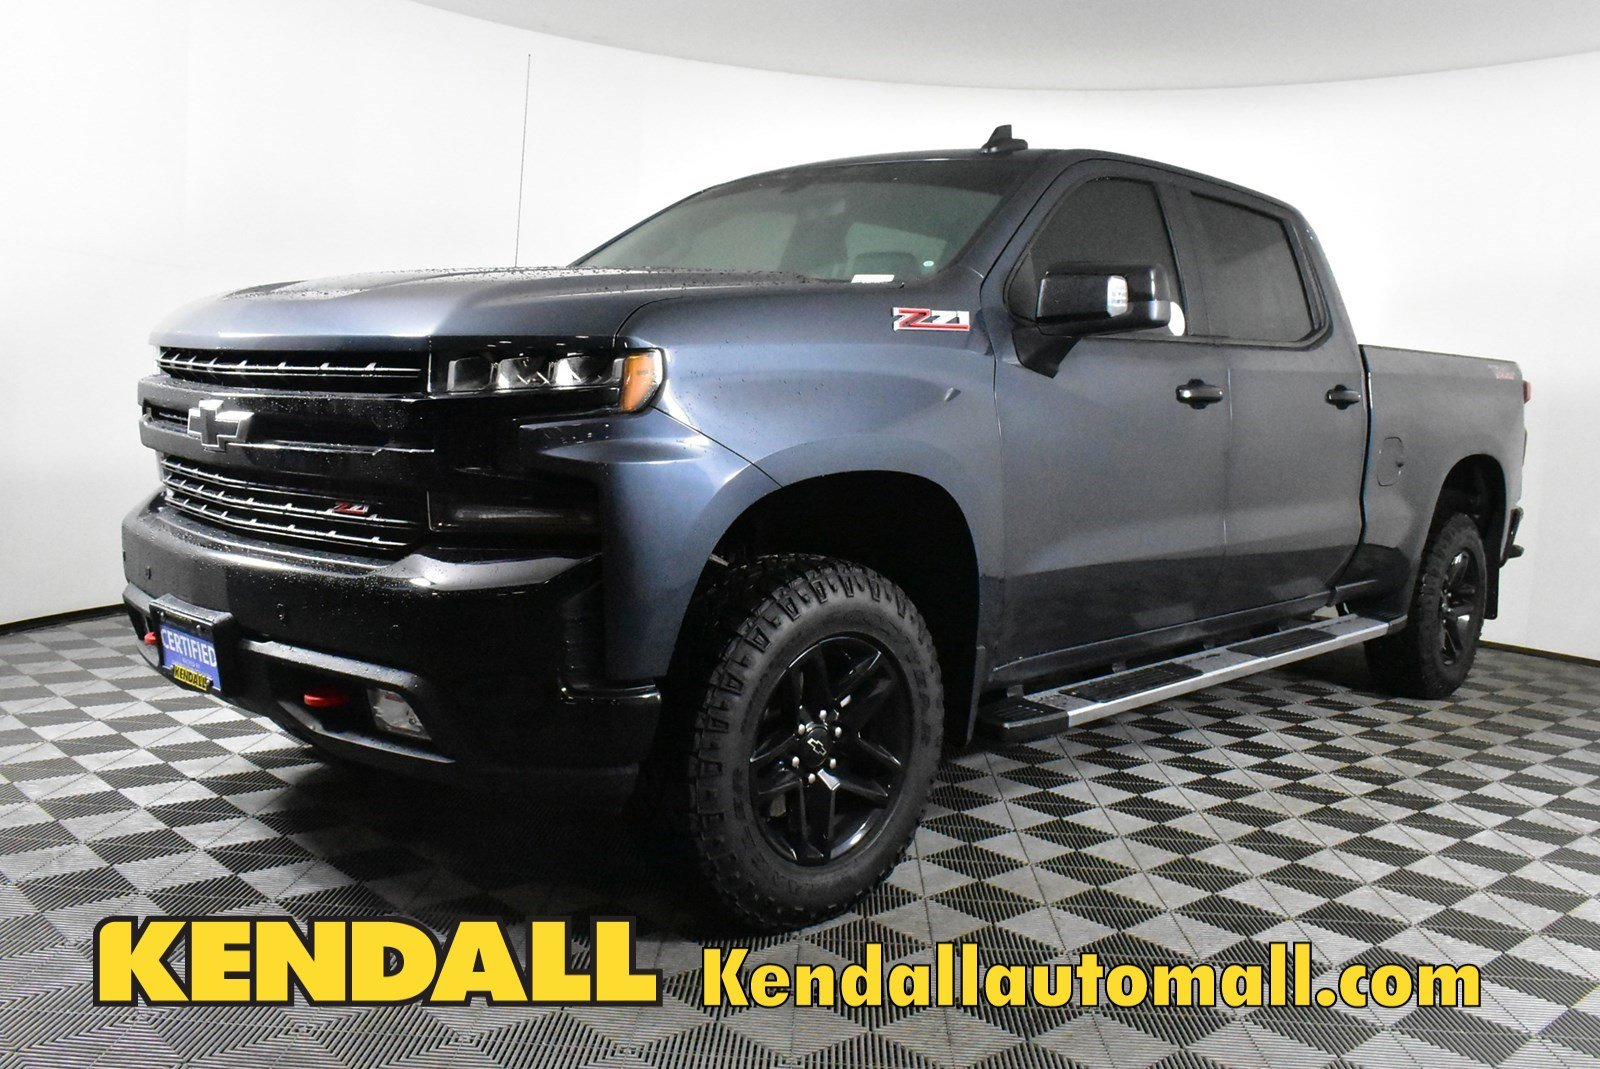 Certified Pre-Owned 2019 Chevrolet Silverado 1500 LT Trail Boss4WD